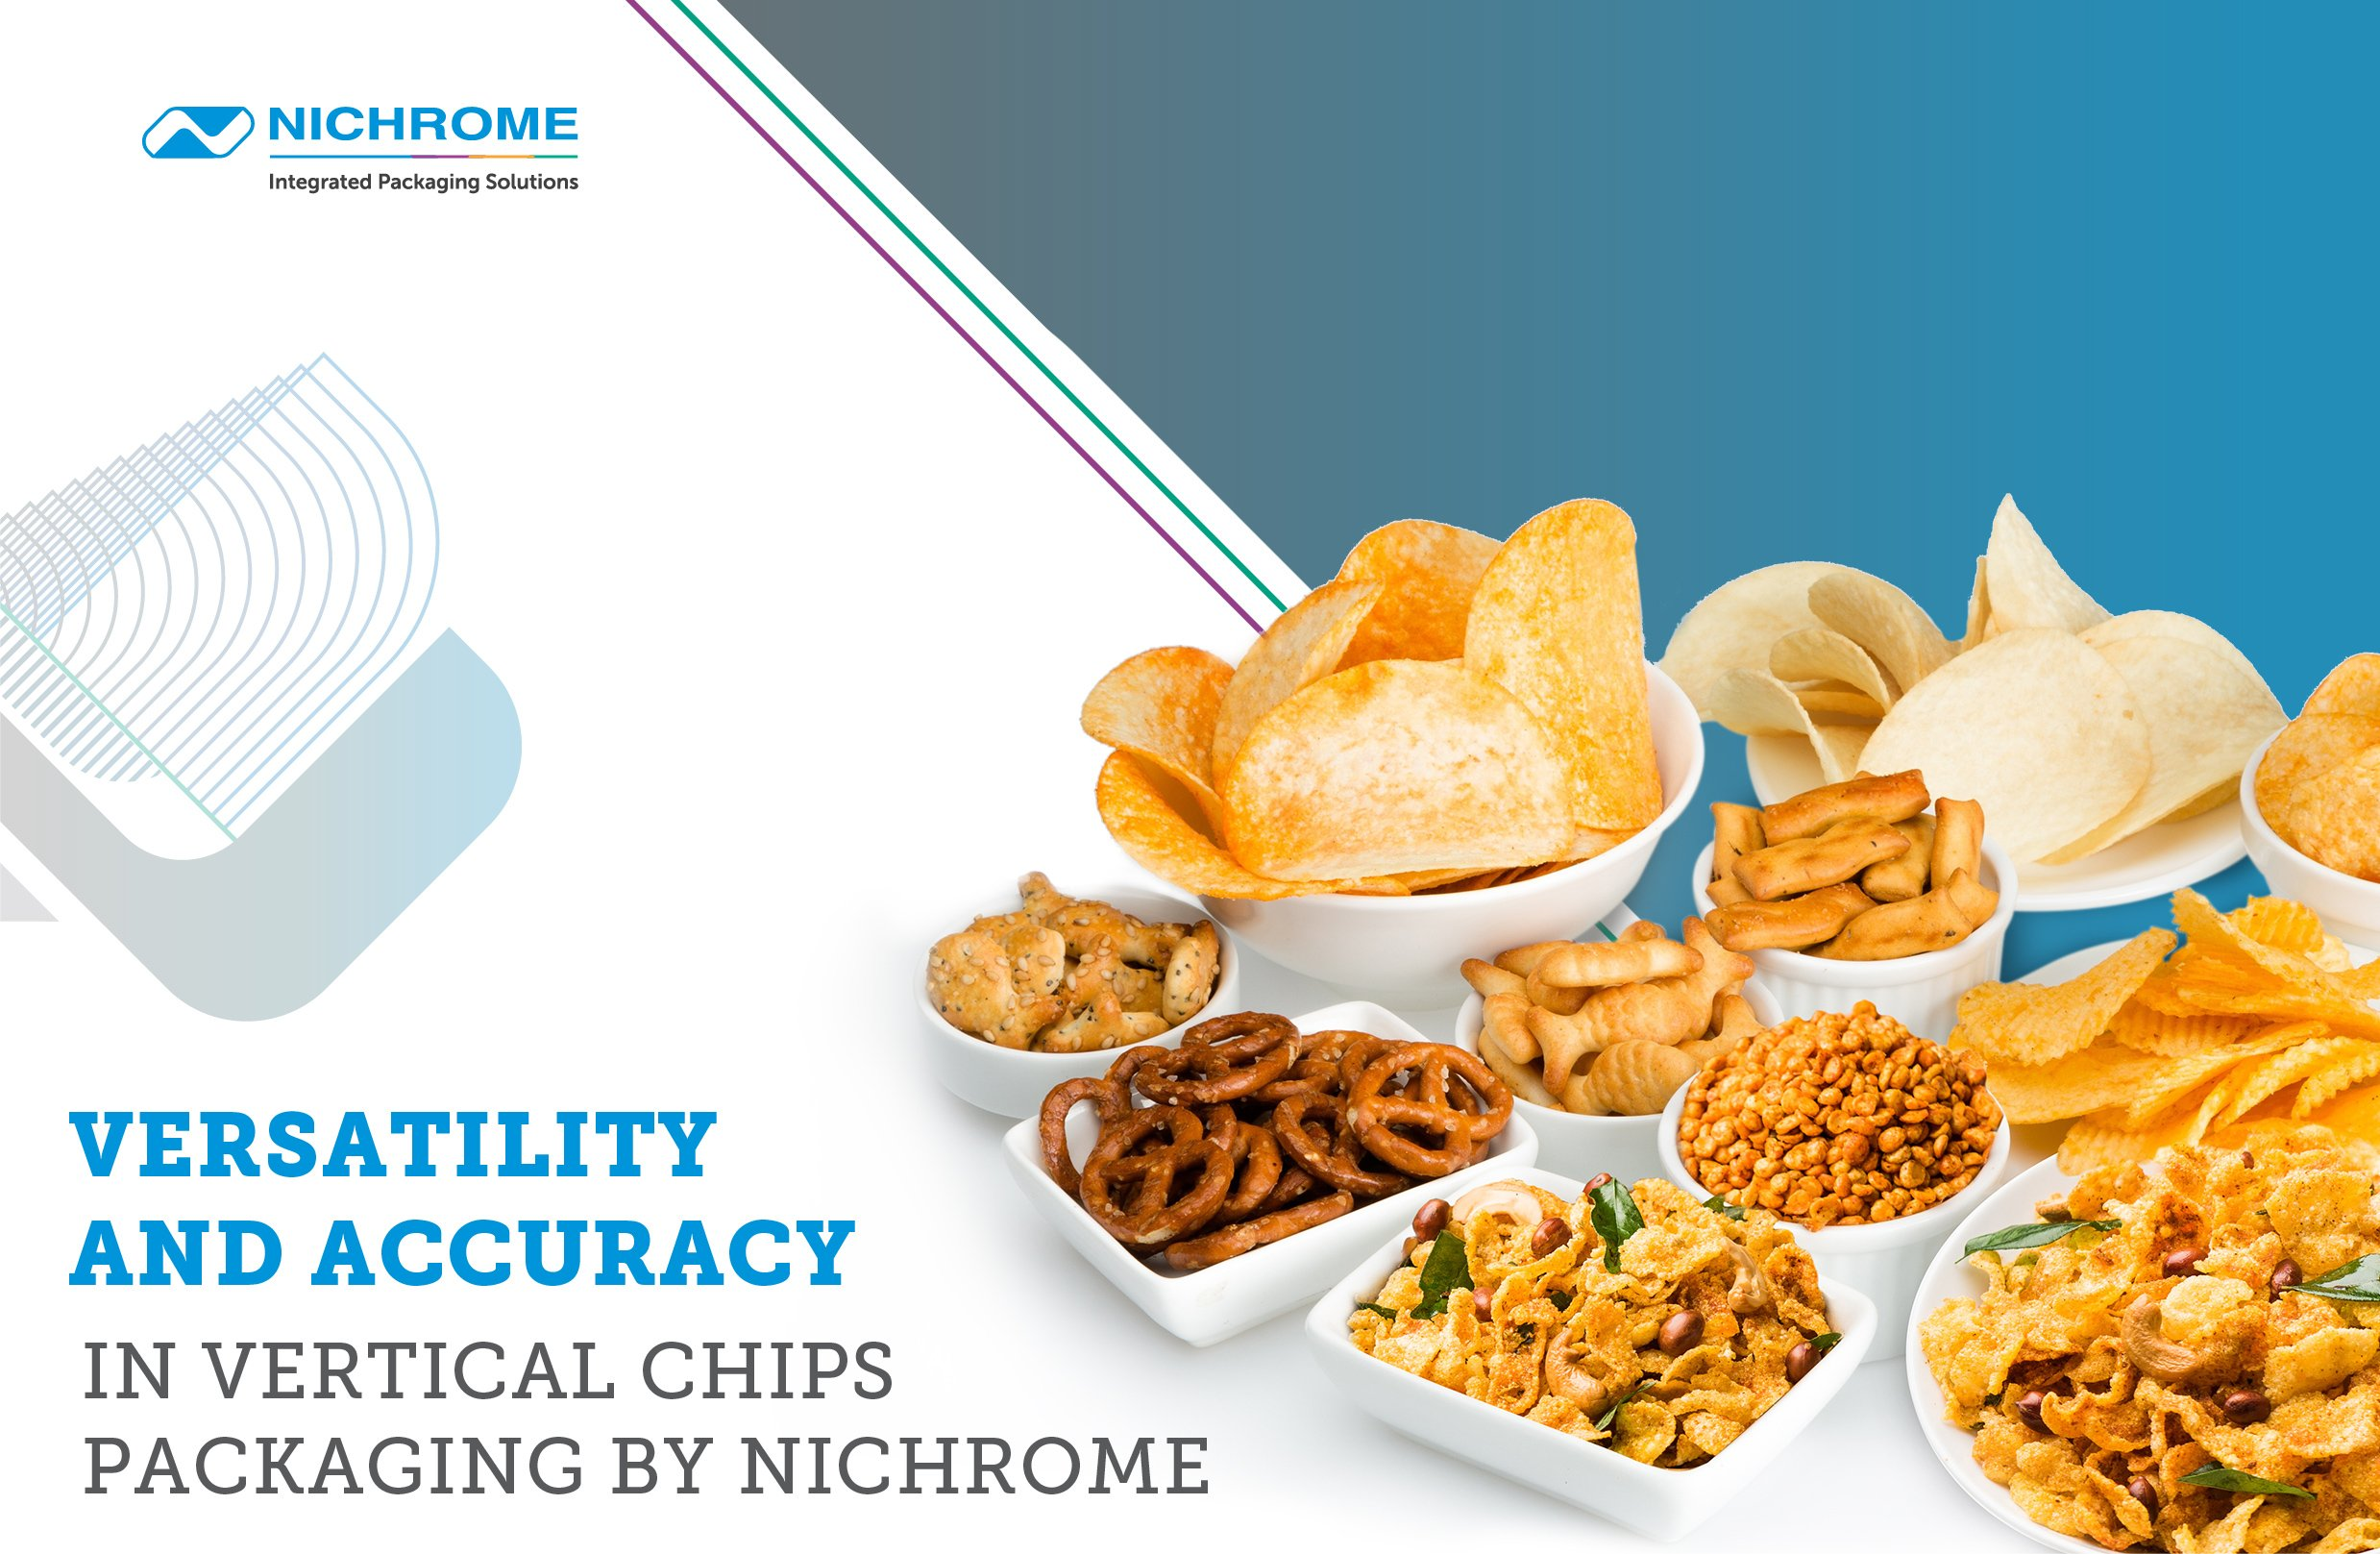 Versatility And Accuracy In Vertical Chips Packaging By Nichrome